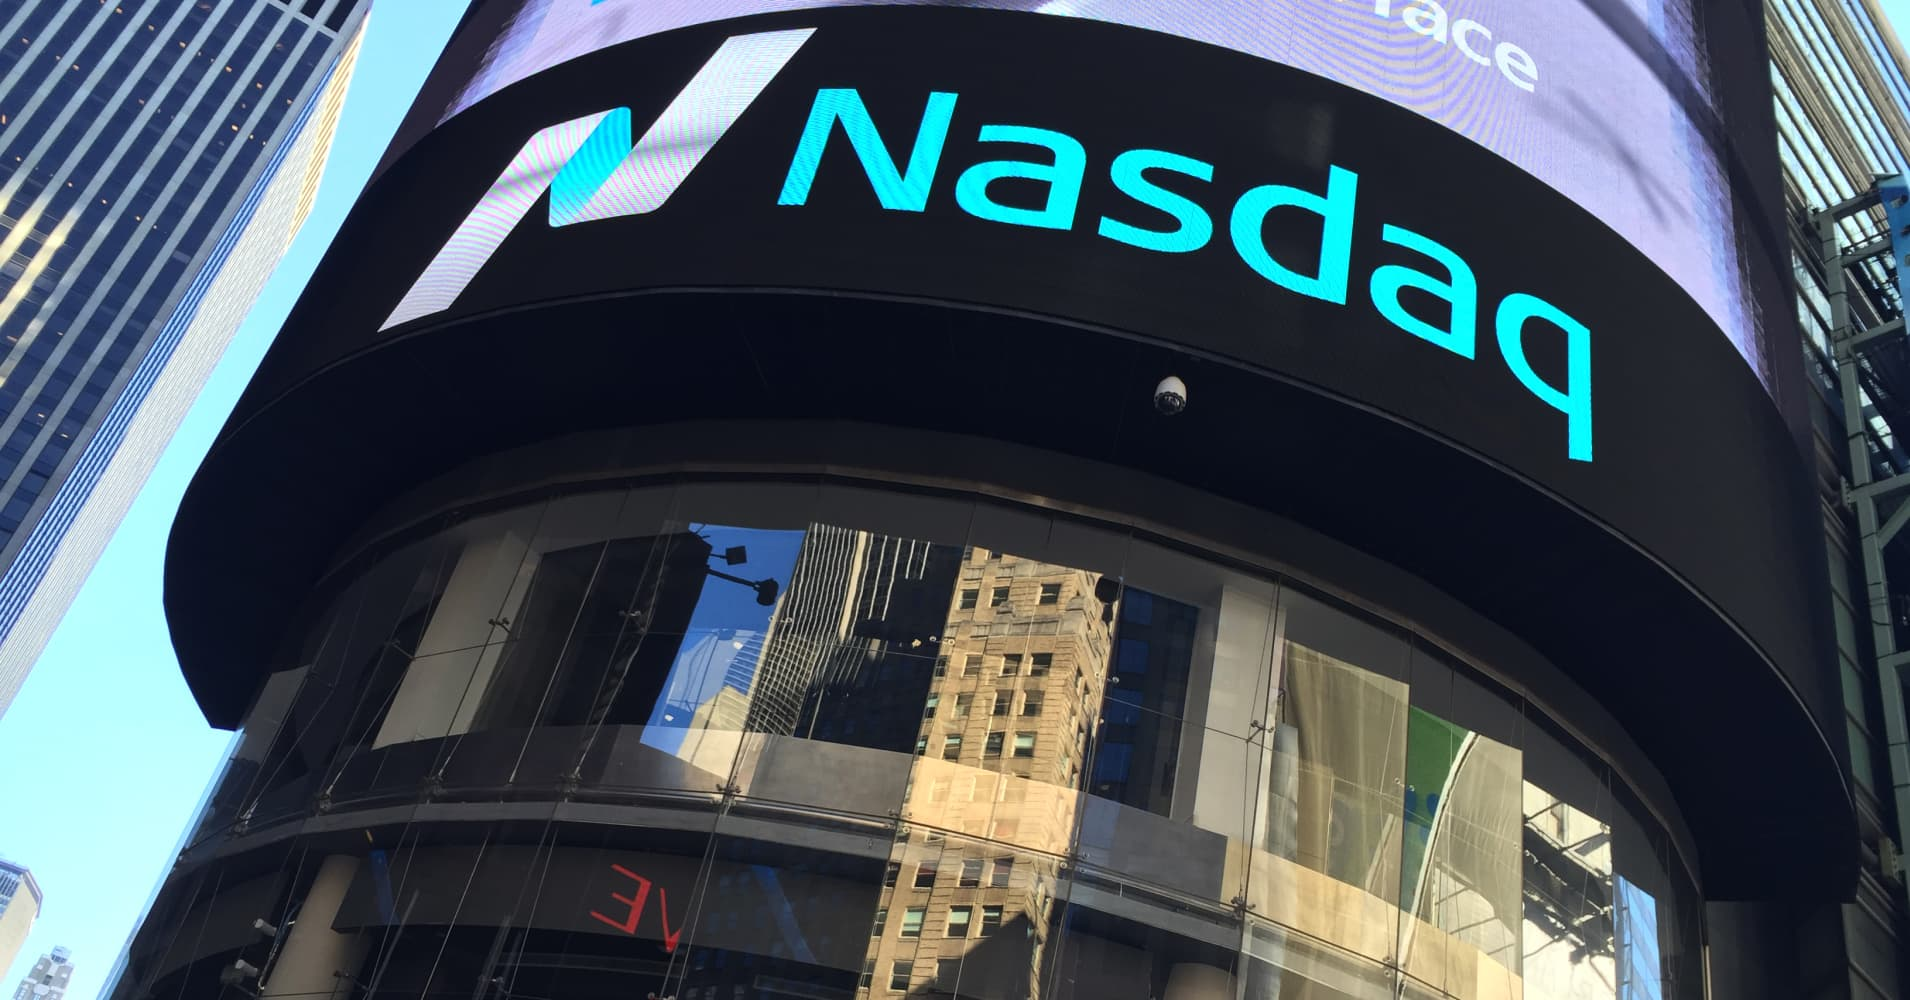 Nasdaq 100 Rally Can Be Credited To Just Two Stocks